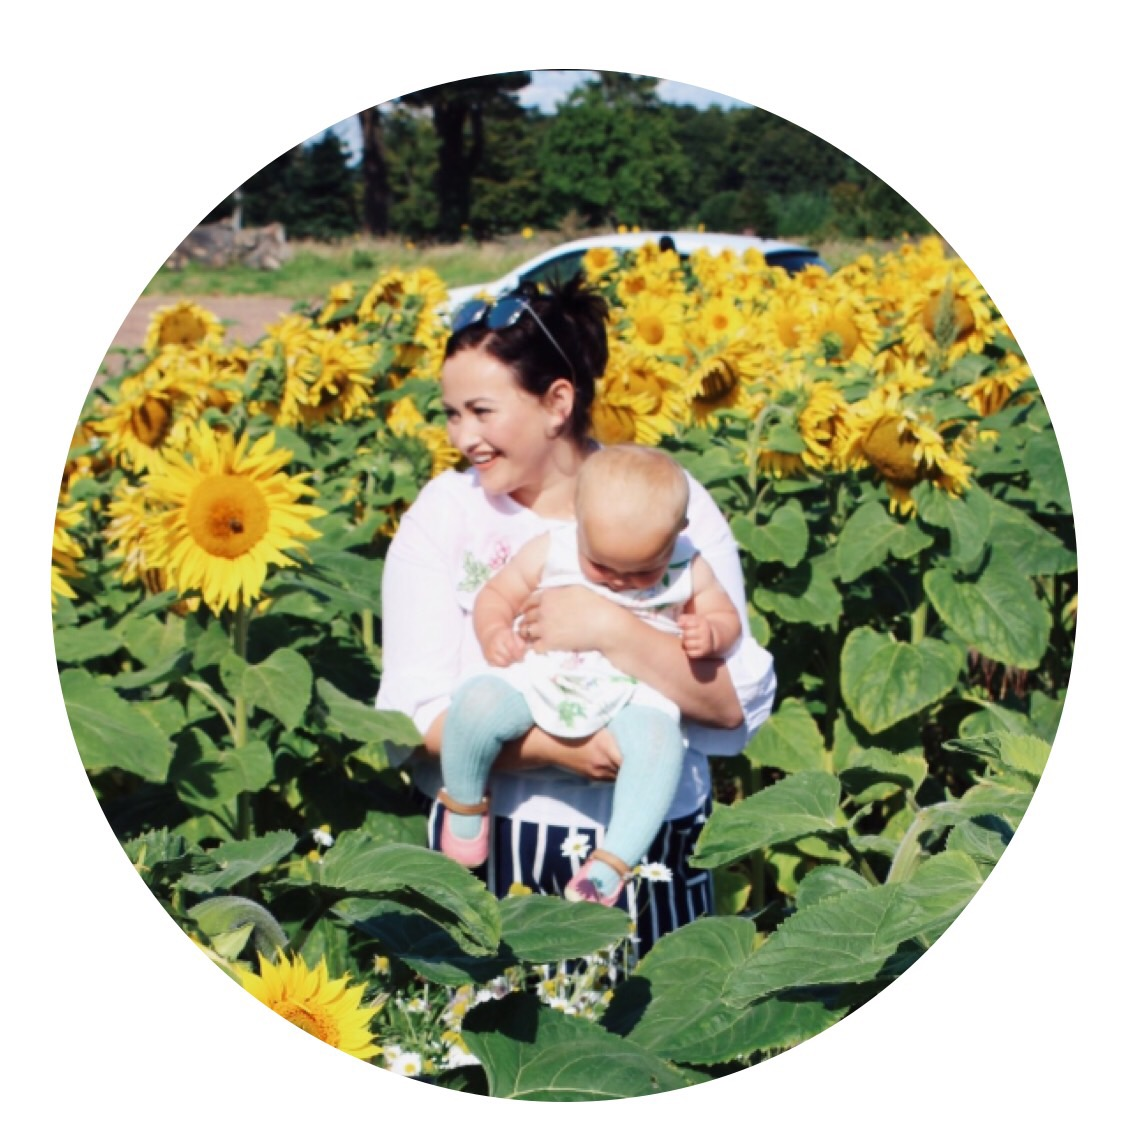 karen and matilda in the sunflowers.JPG